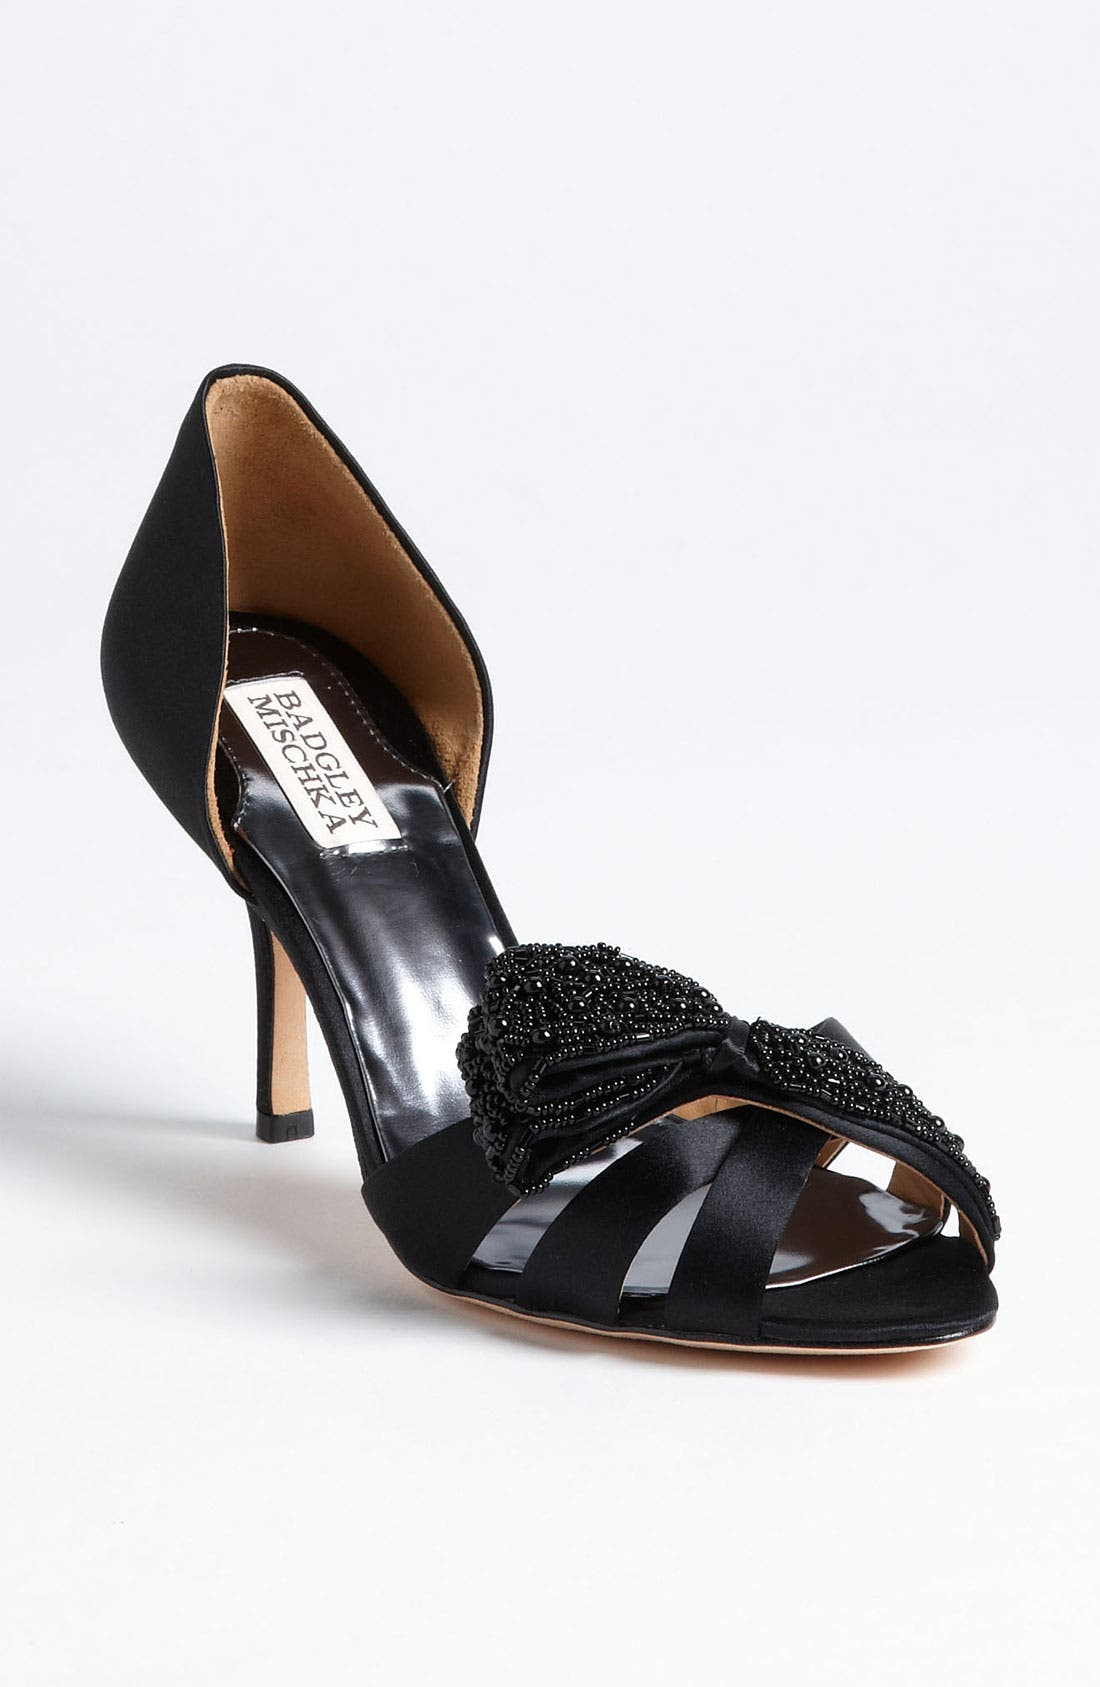 Alternate Image 1 Selected - Badgley Mischka 'Vita' Pump